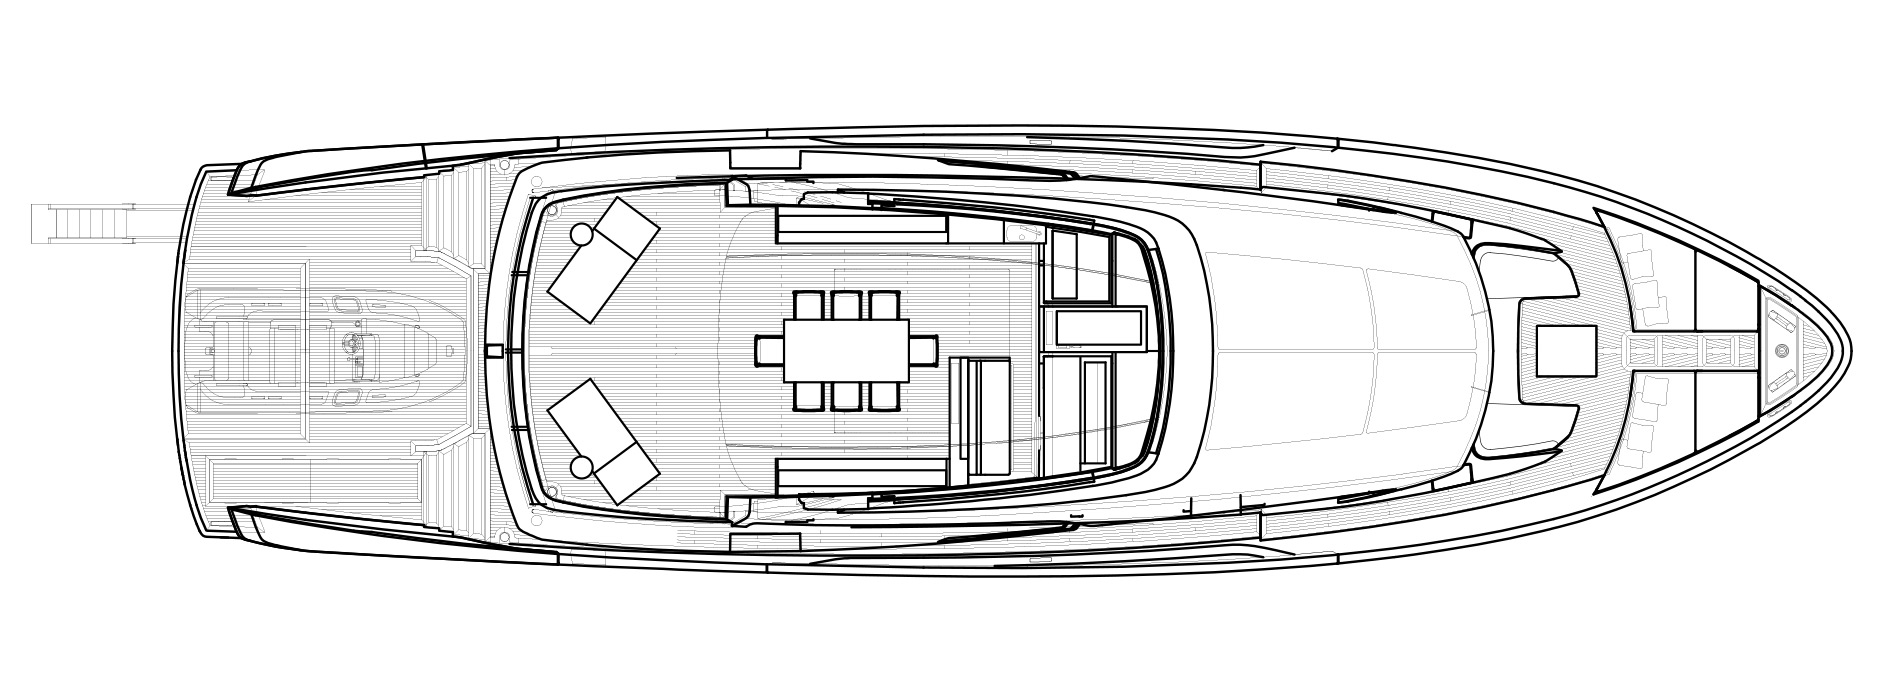 Sanlorenzo Yachts SX88 Flying bridge Versione Lissoni